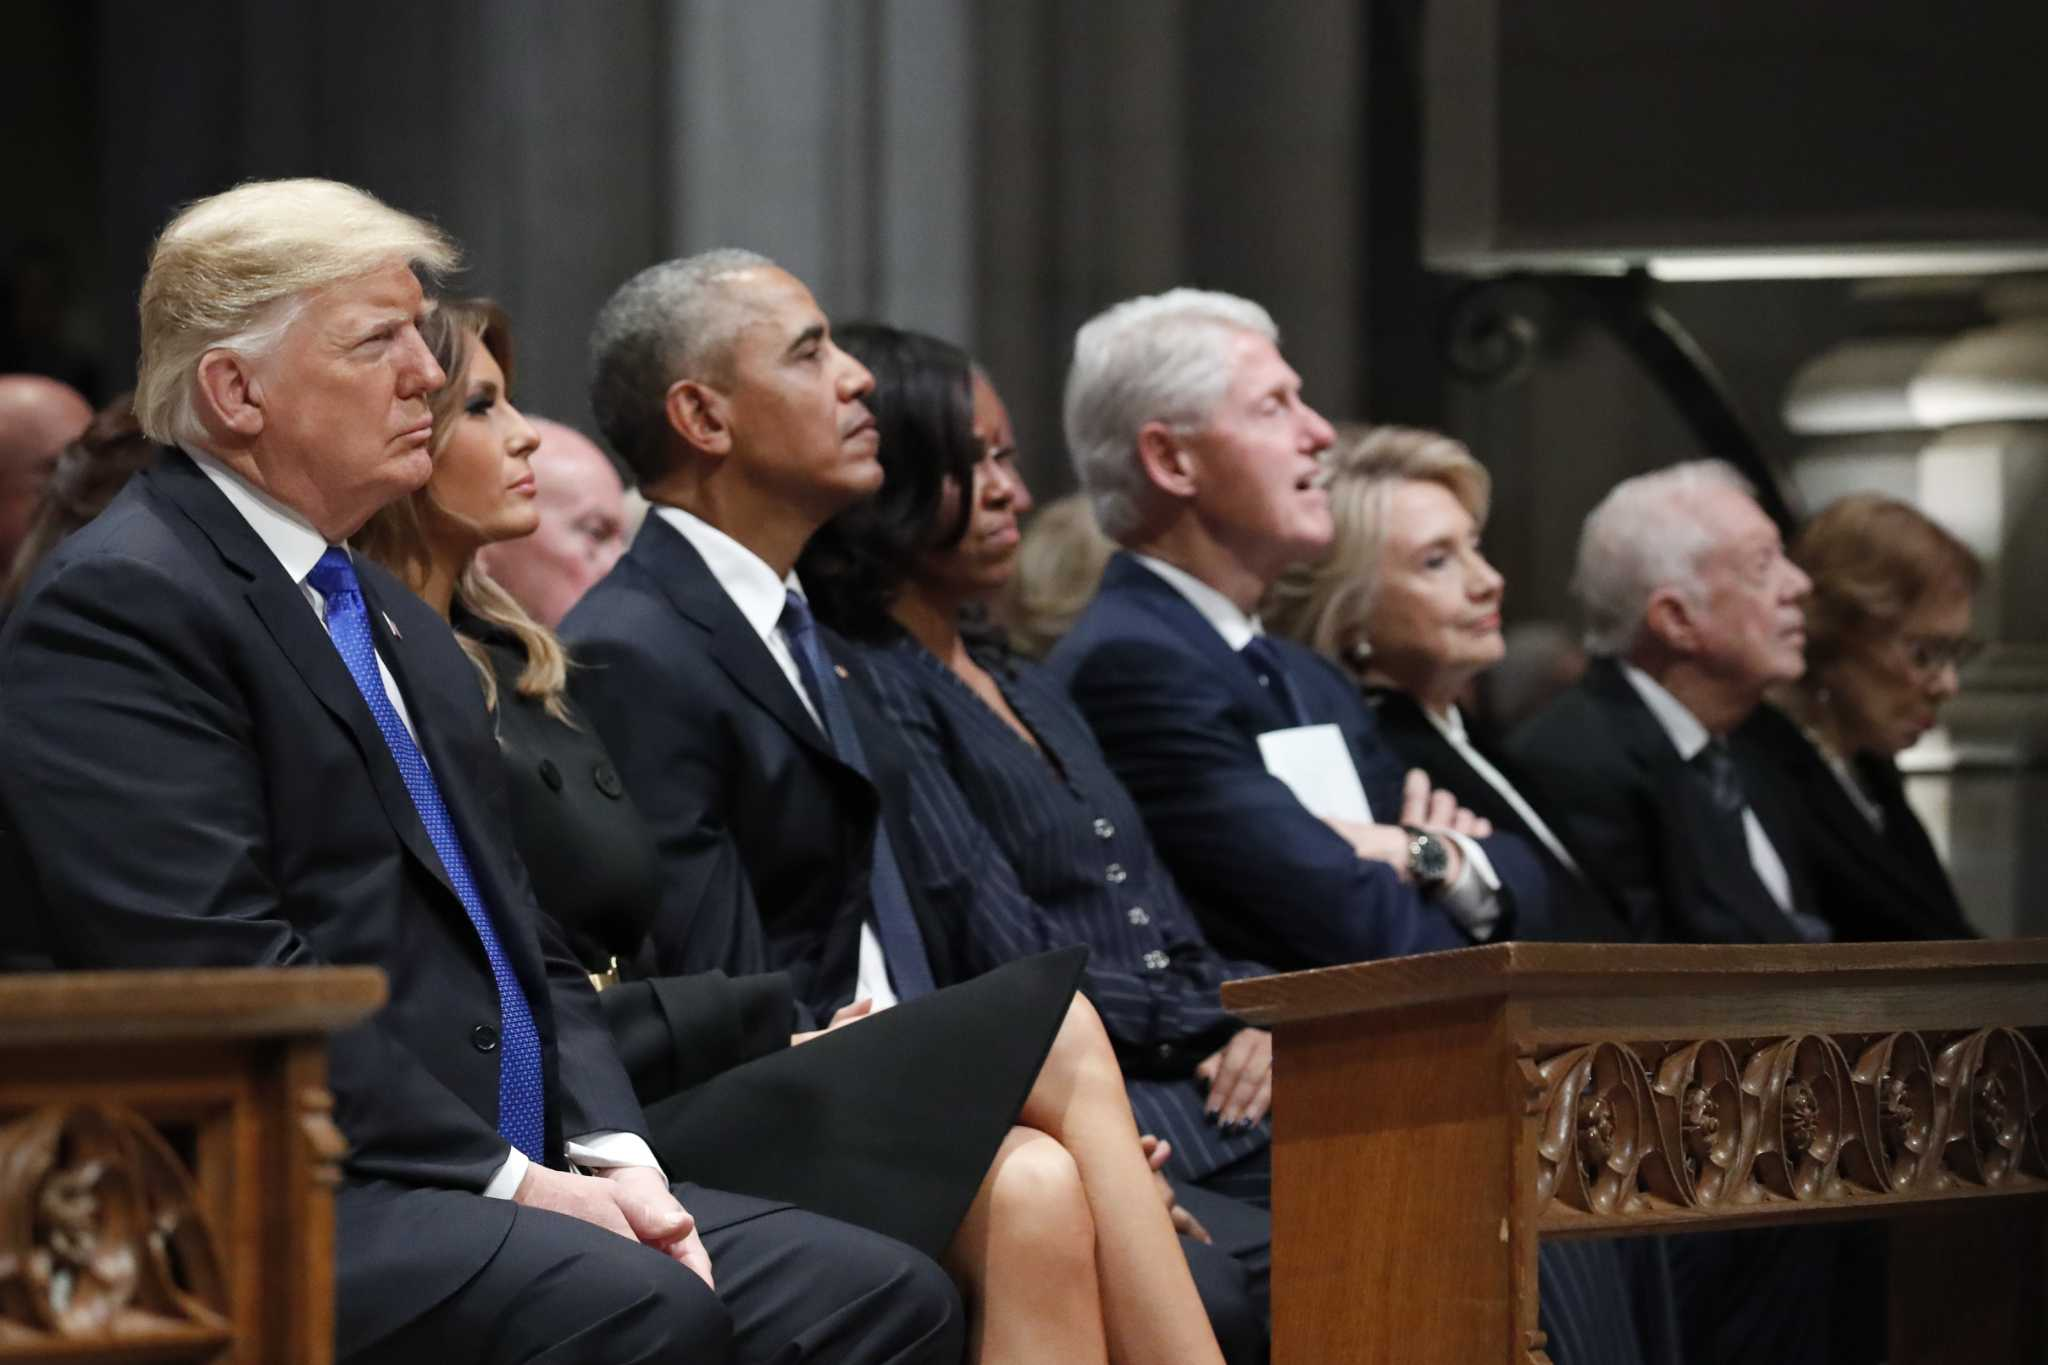 trump odd man out as presidents assemble for bush funeral   jacksonville journal courier